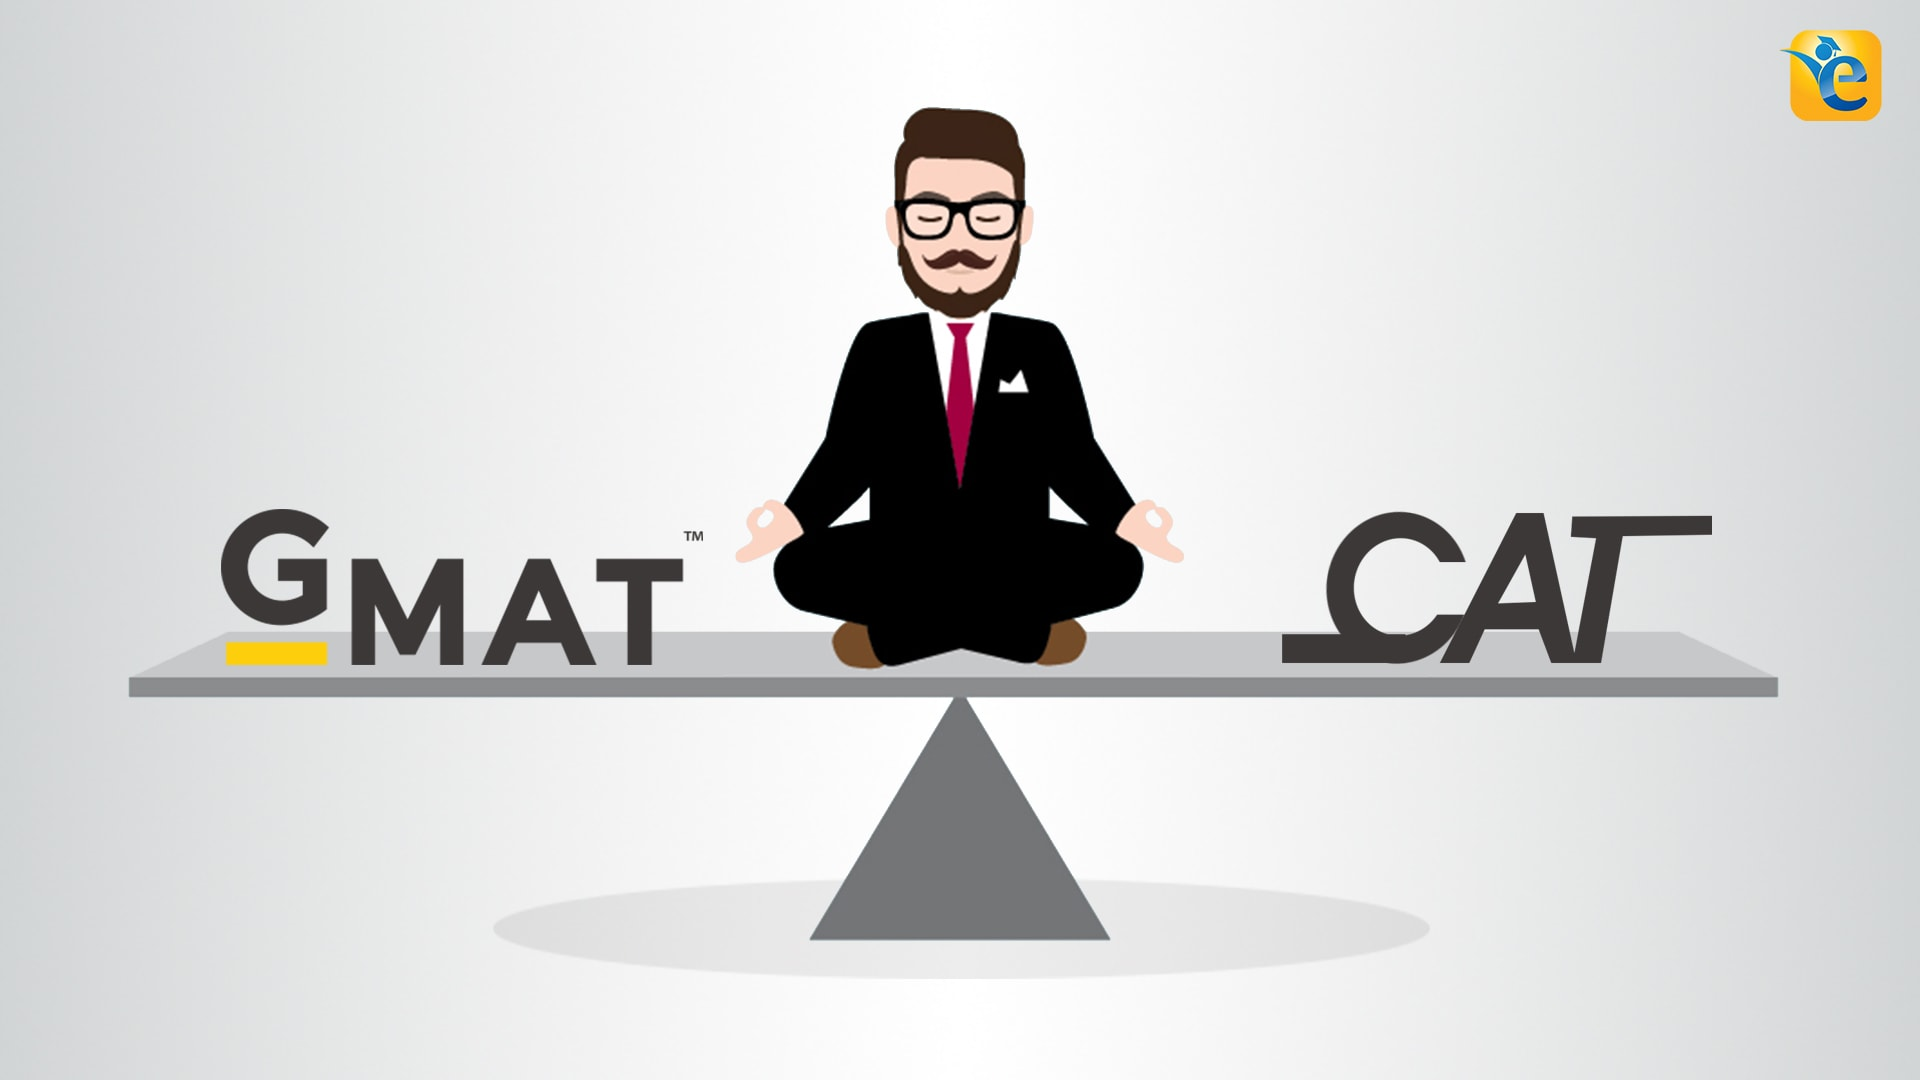 GMAT vs CAT Differences